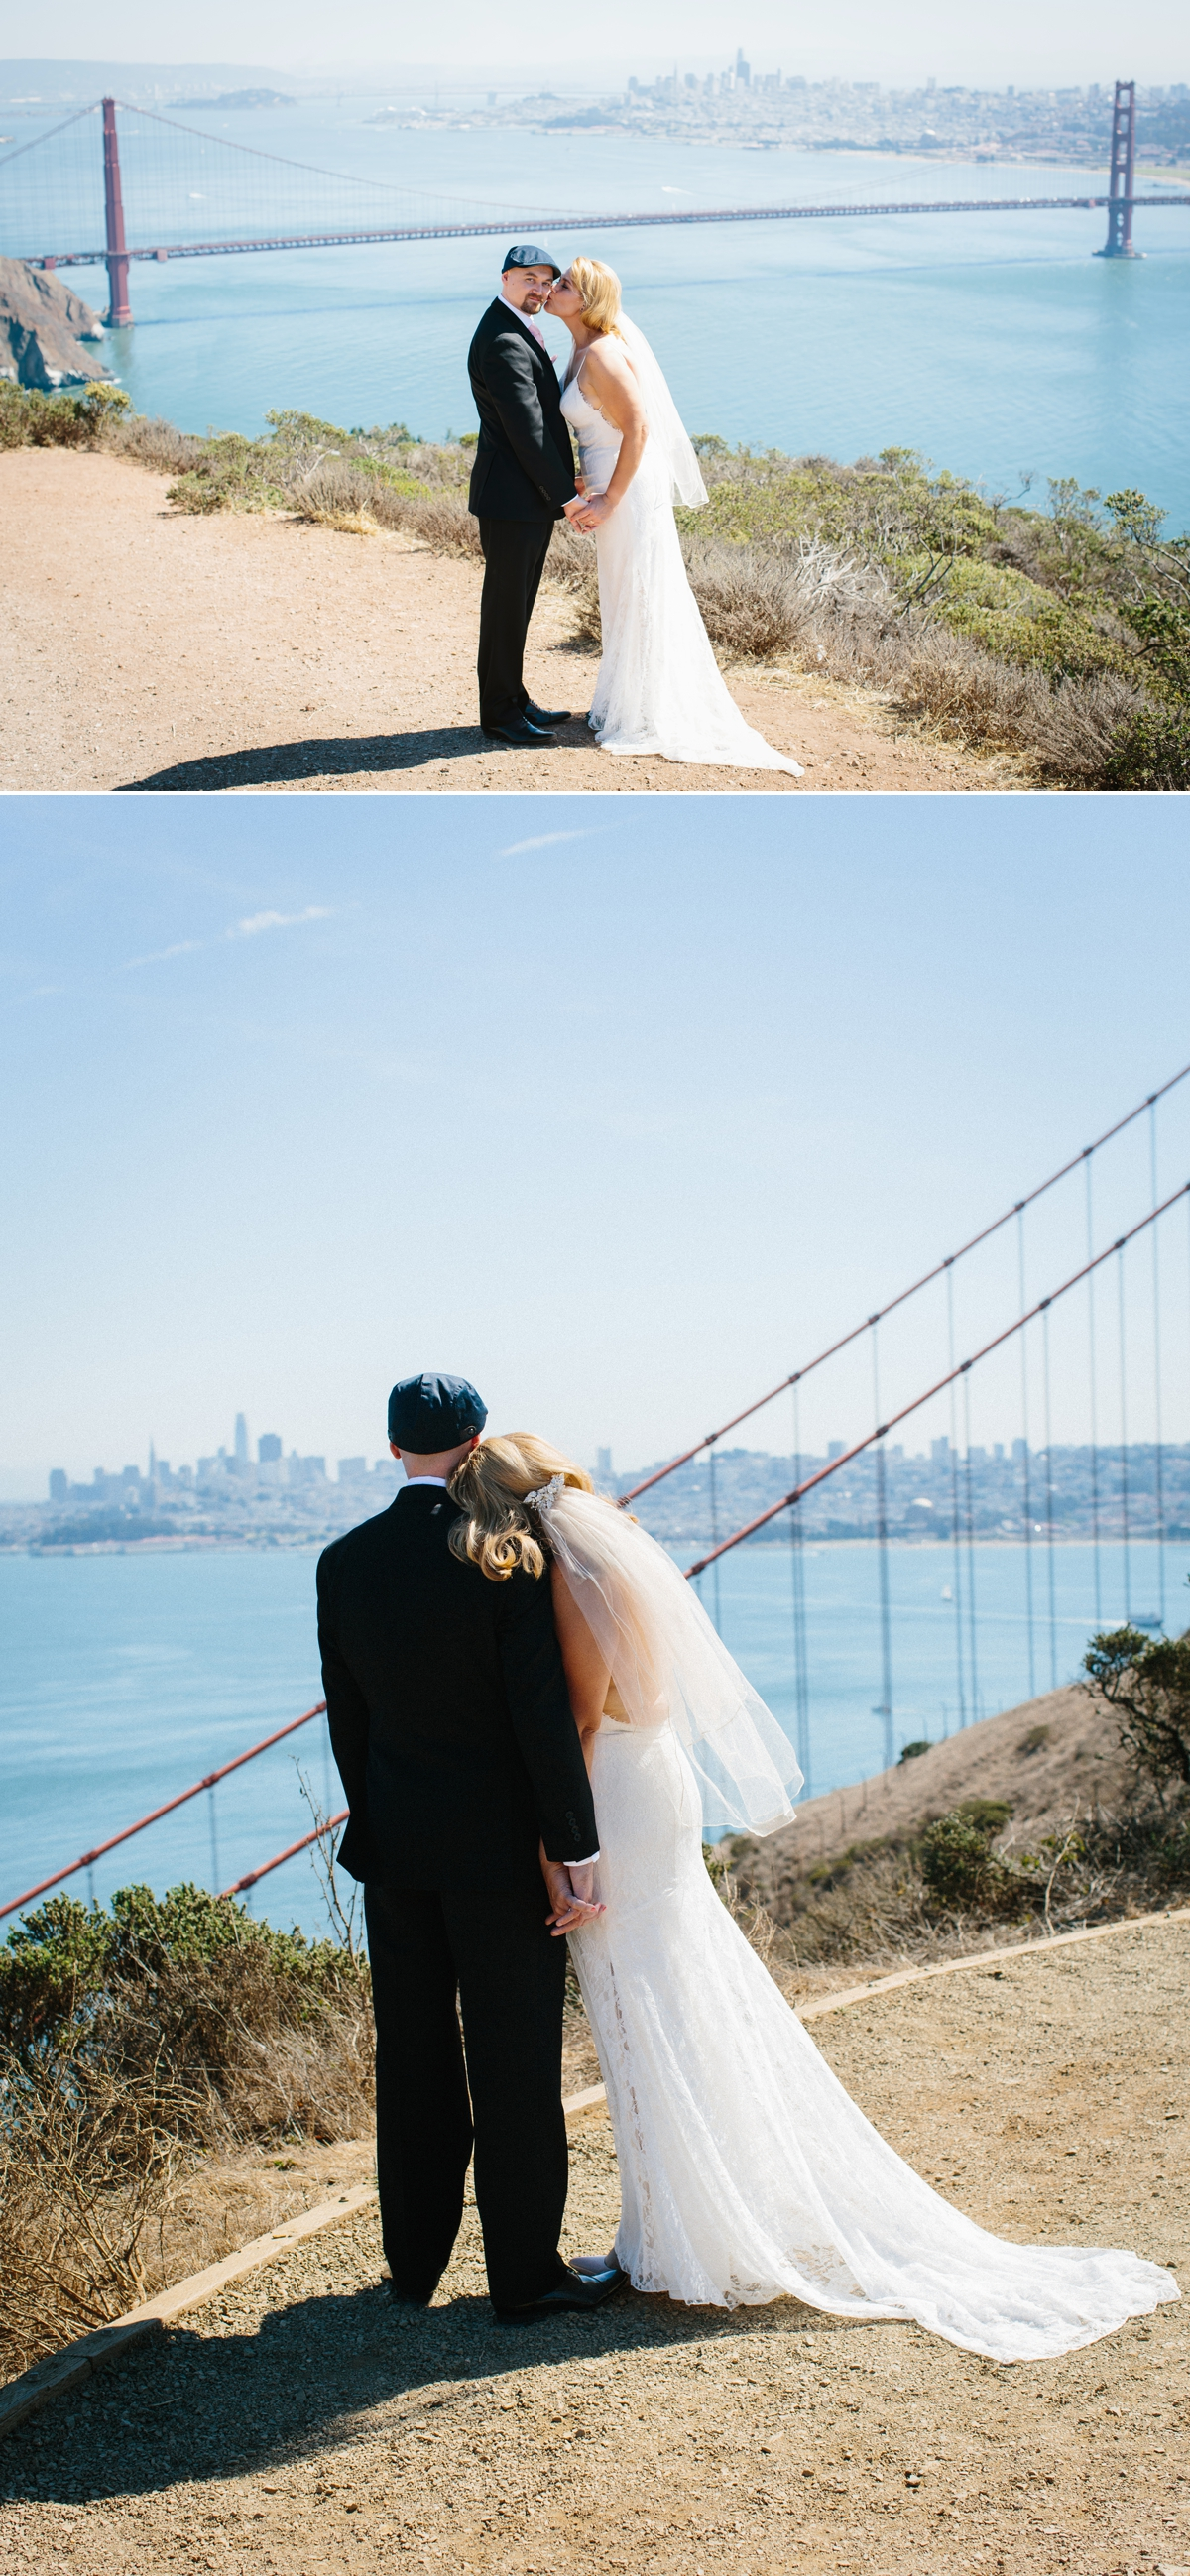 A quick stop in the Marin Headlands for jaw-dropping views of the Bay, the Golden Gate, and San Francisco's skyline!